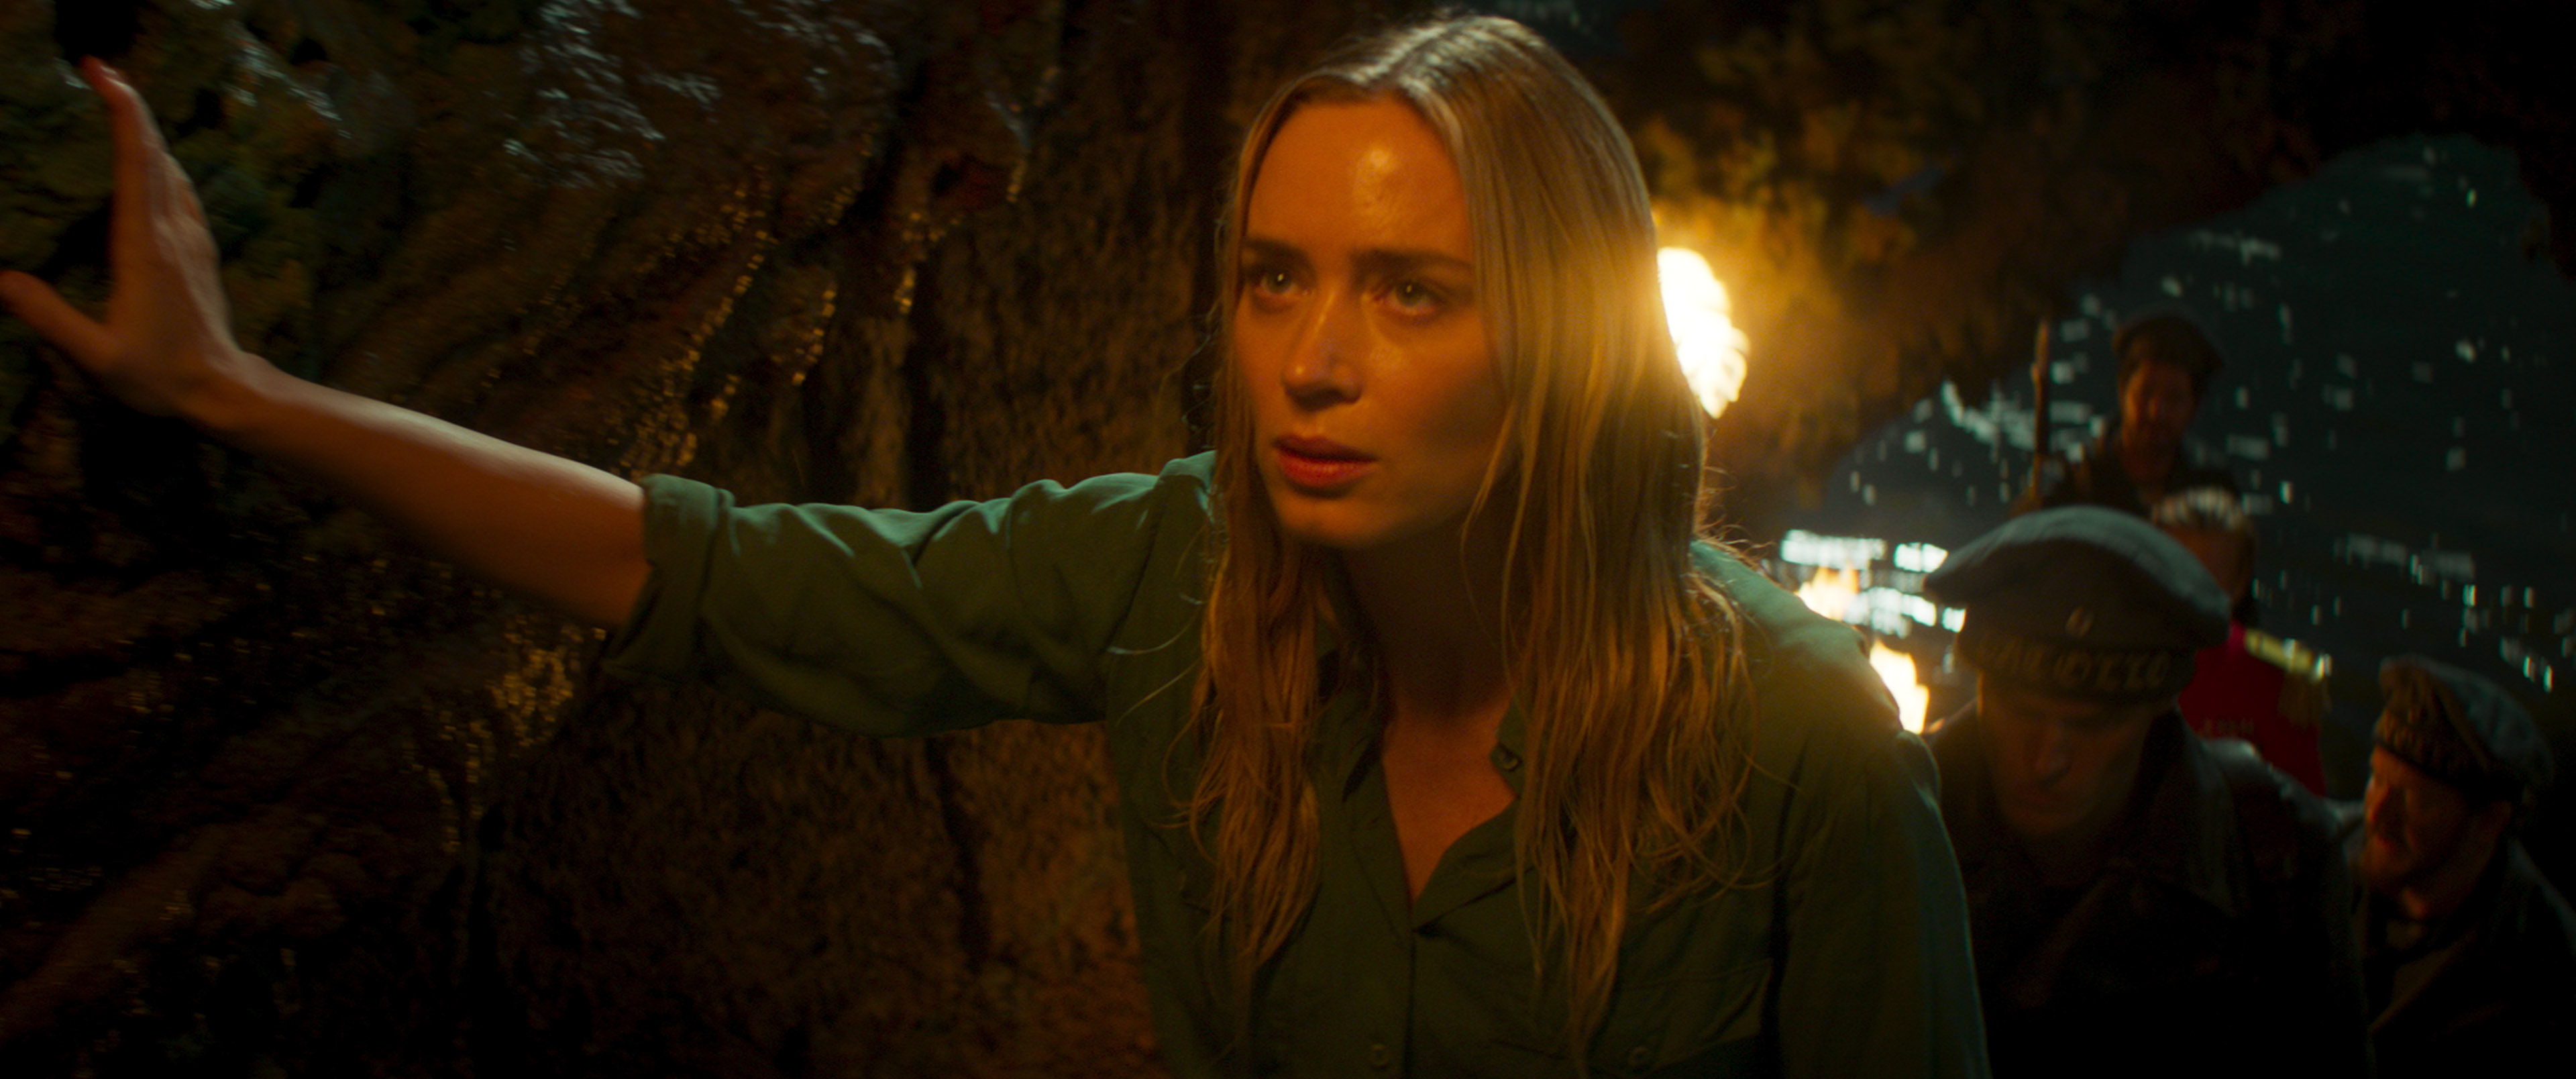 Exciting New Trailer and Poster for 'Jungle Cruise' - Image 3